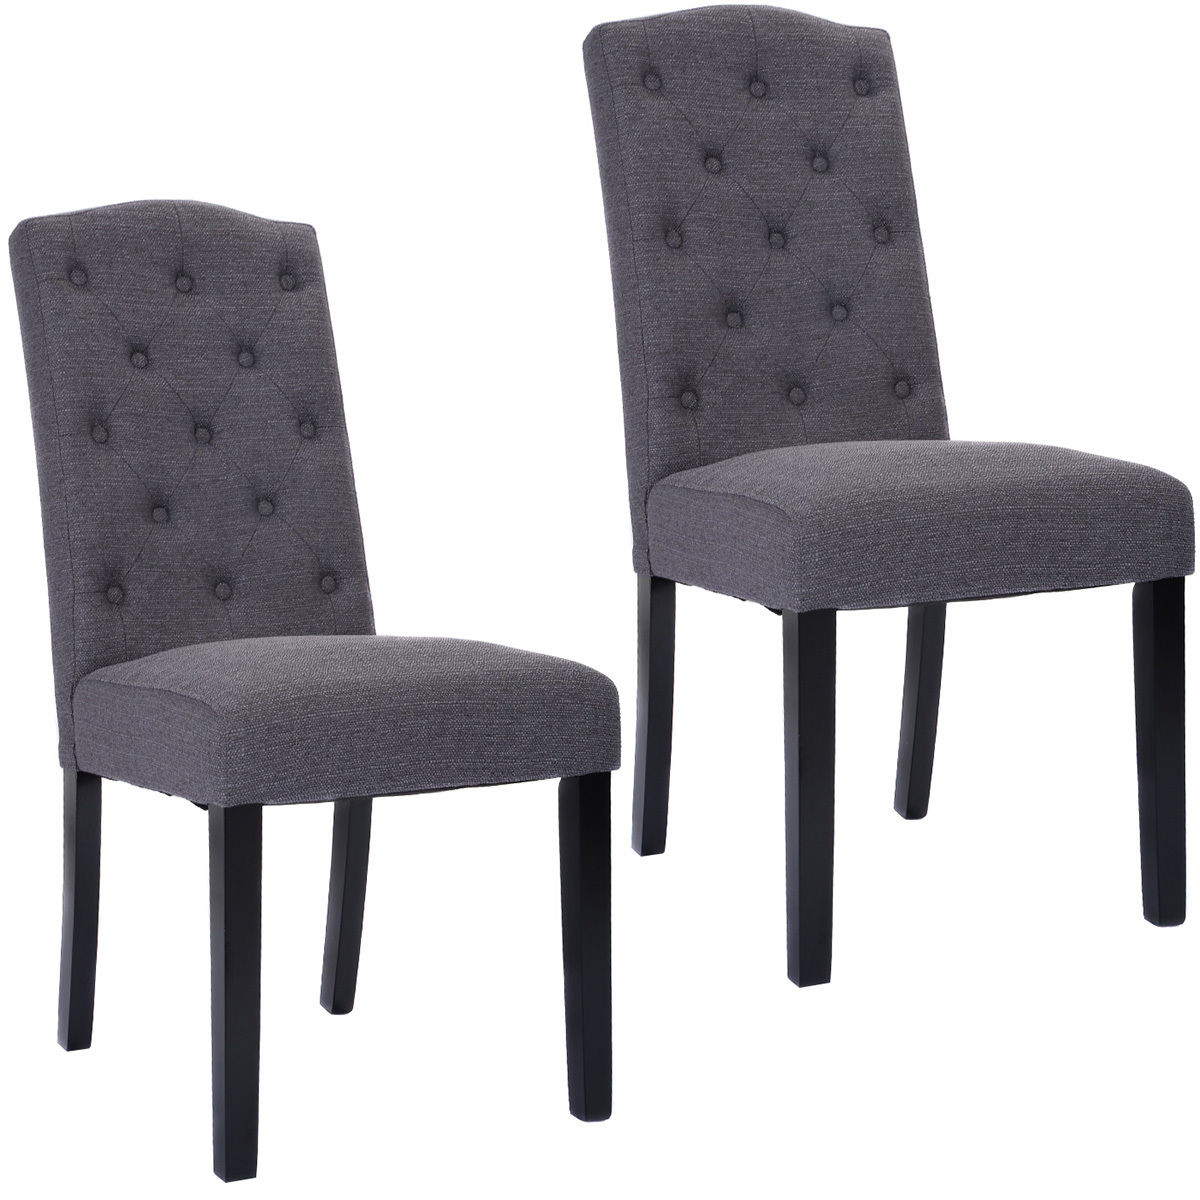 Costway Set of 2 Fabric Wood Accent Dining Chair Tufted Modern Living Room Furniture by Costway